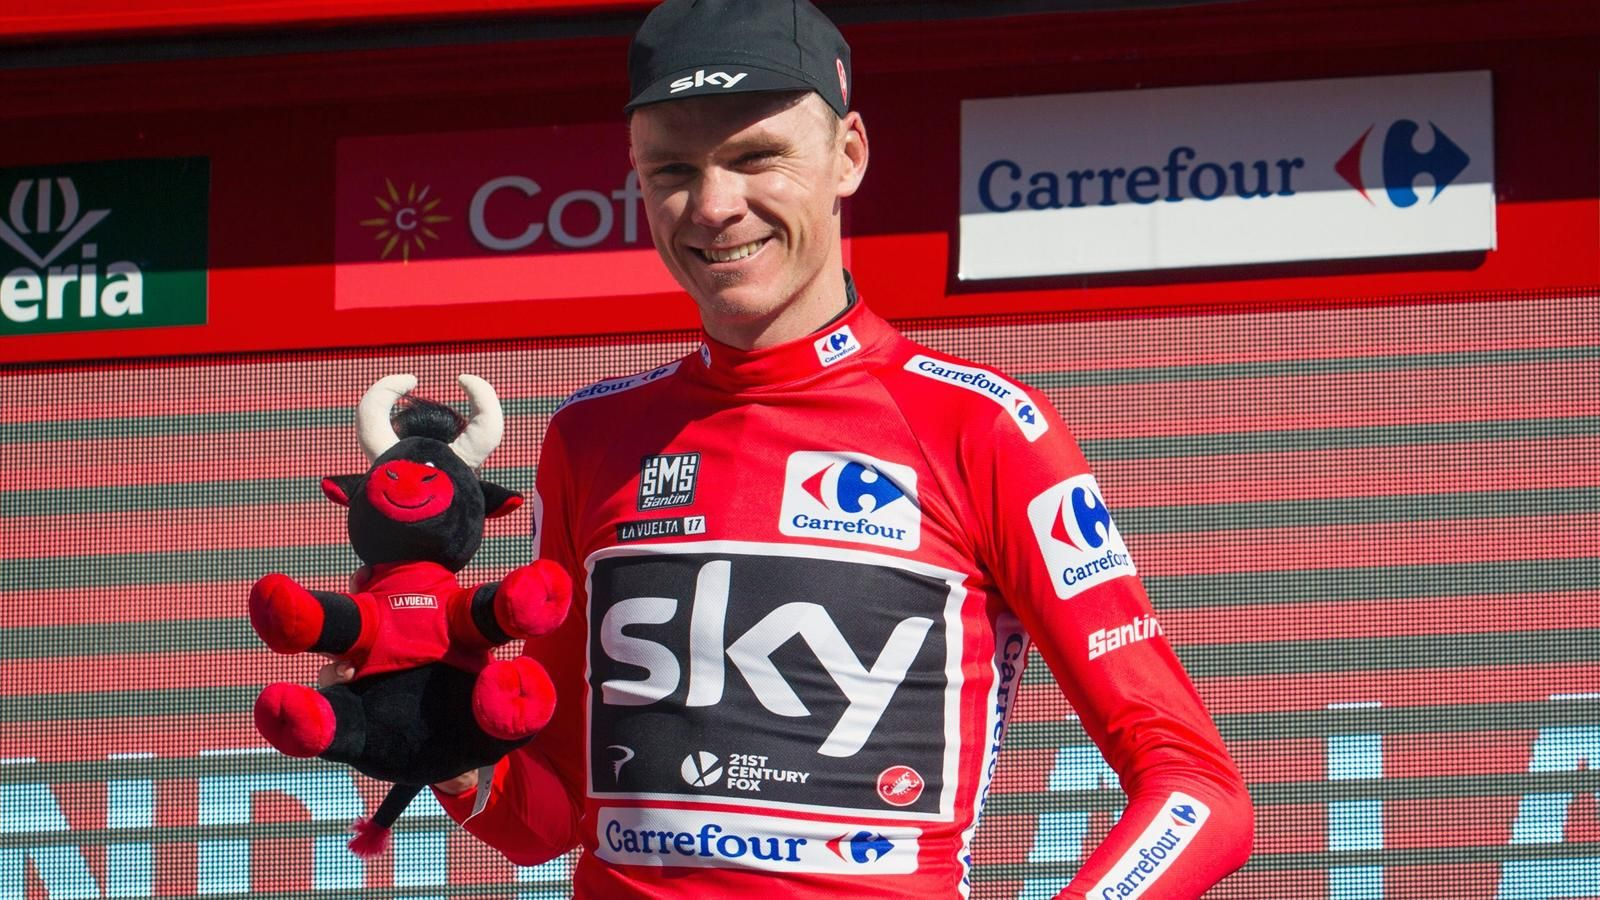 Froome Team Sky vincono Vuelta 2017 The Web Coffee